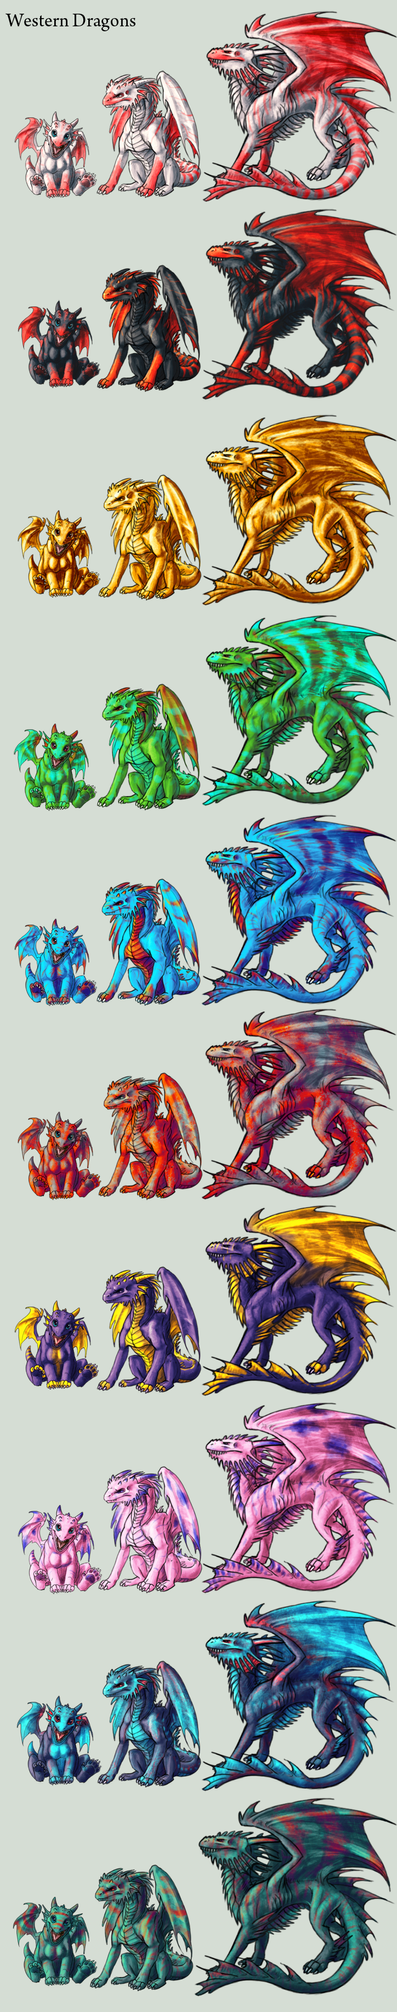 Adopt -Western Dragons- by elen89